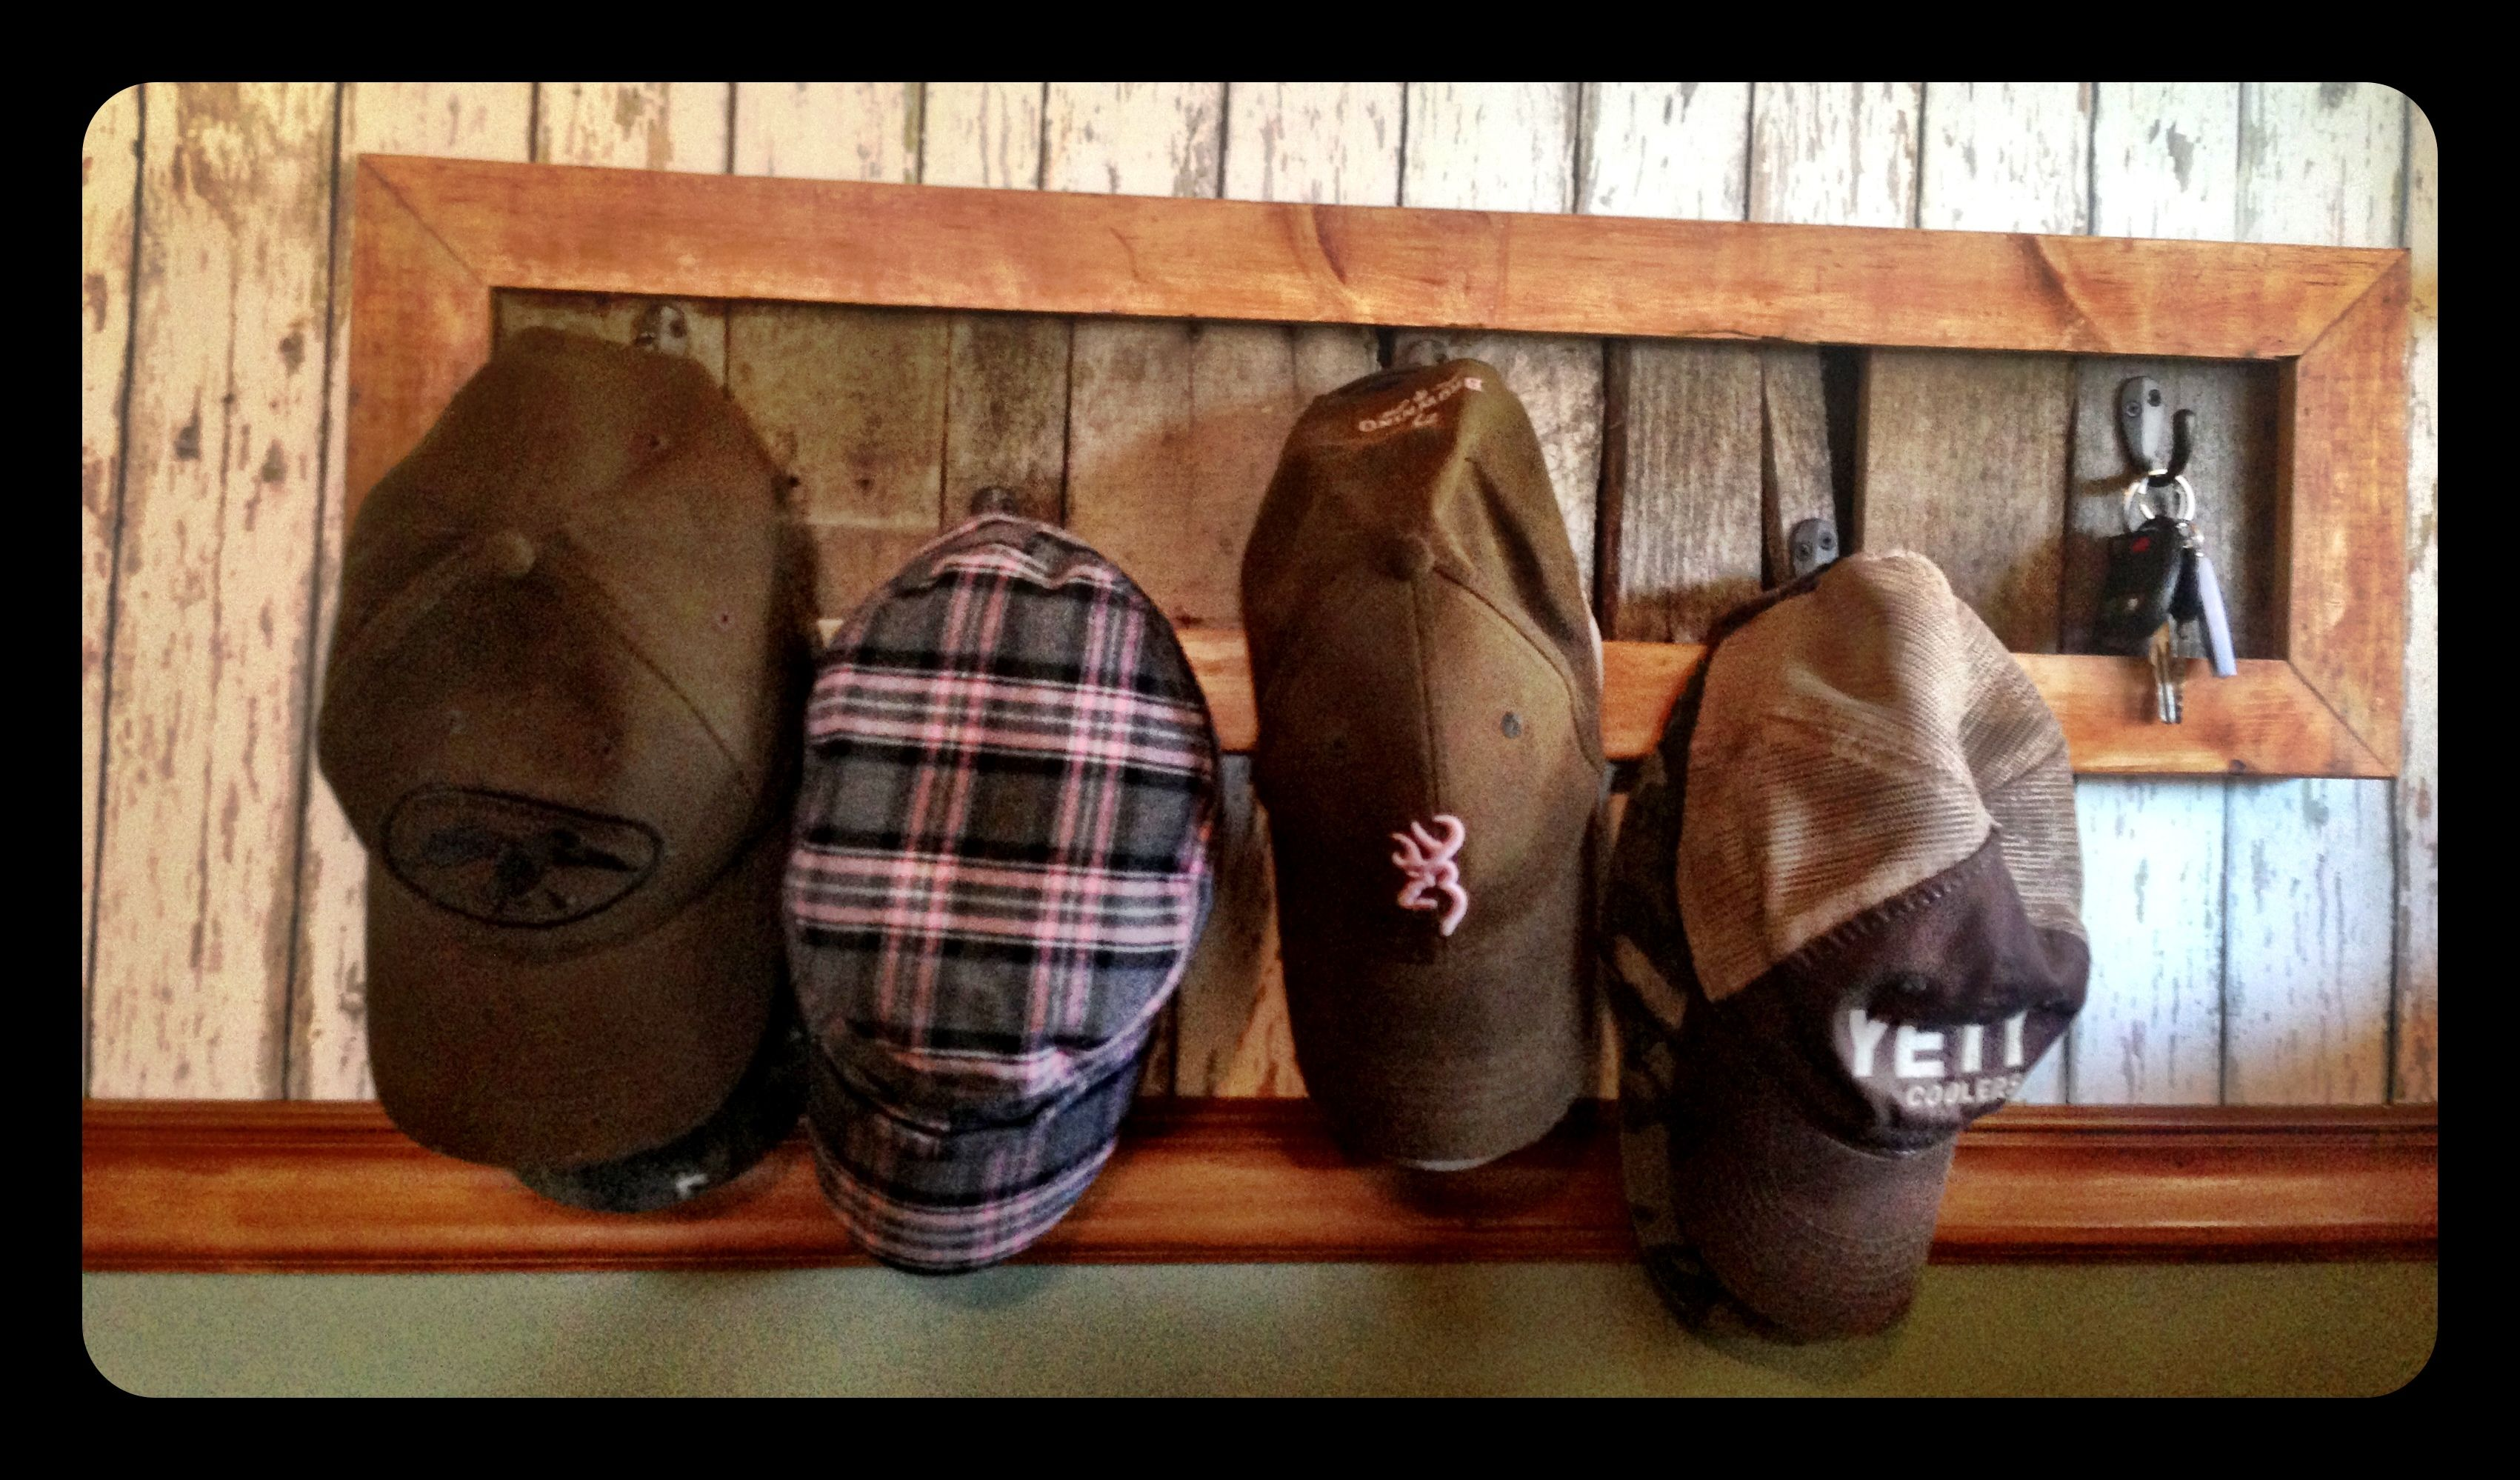 Hat rack made from pallets.